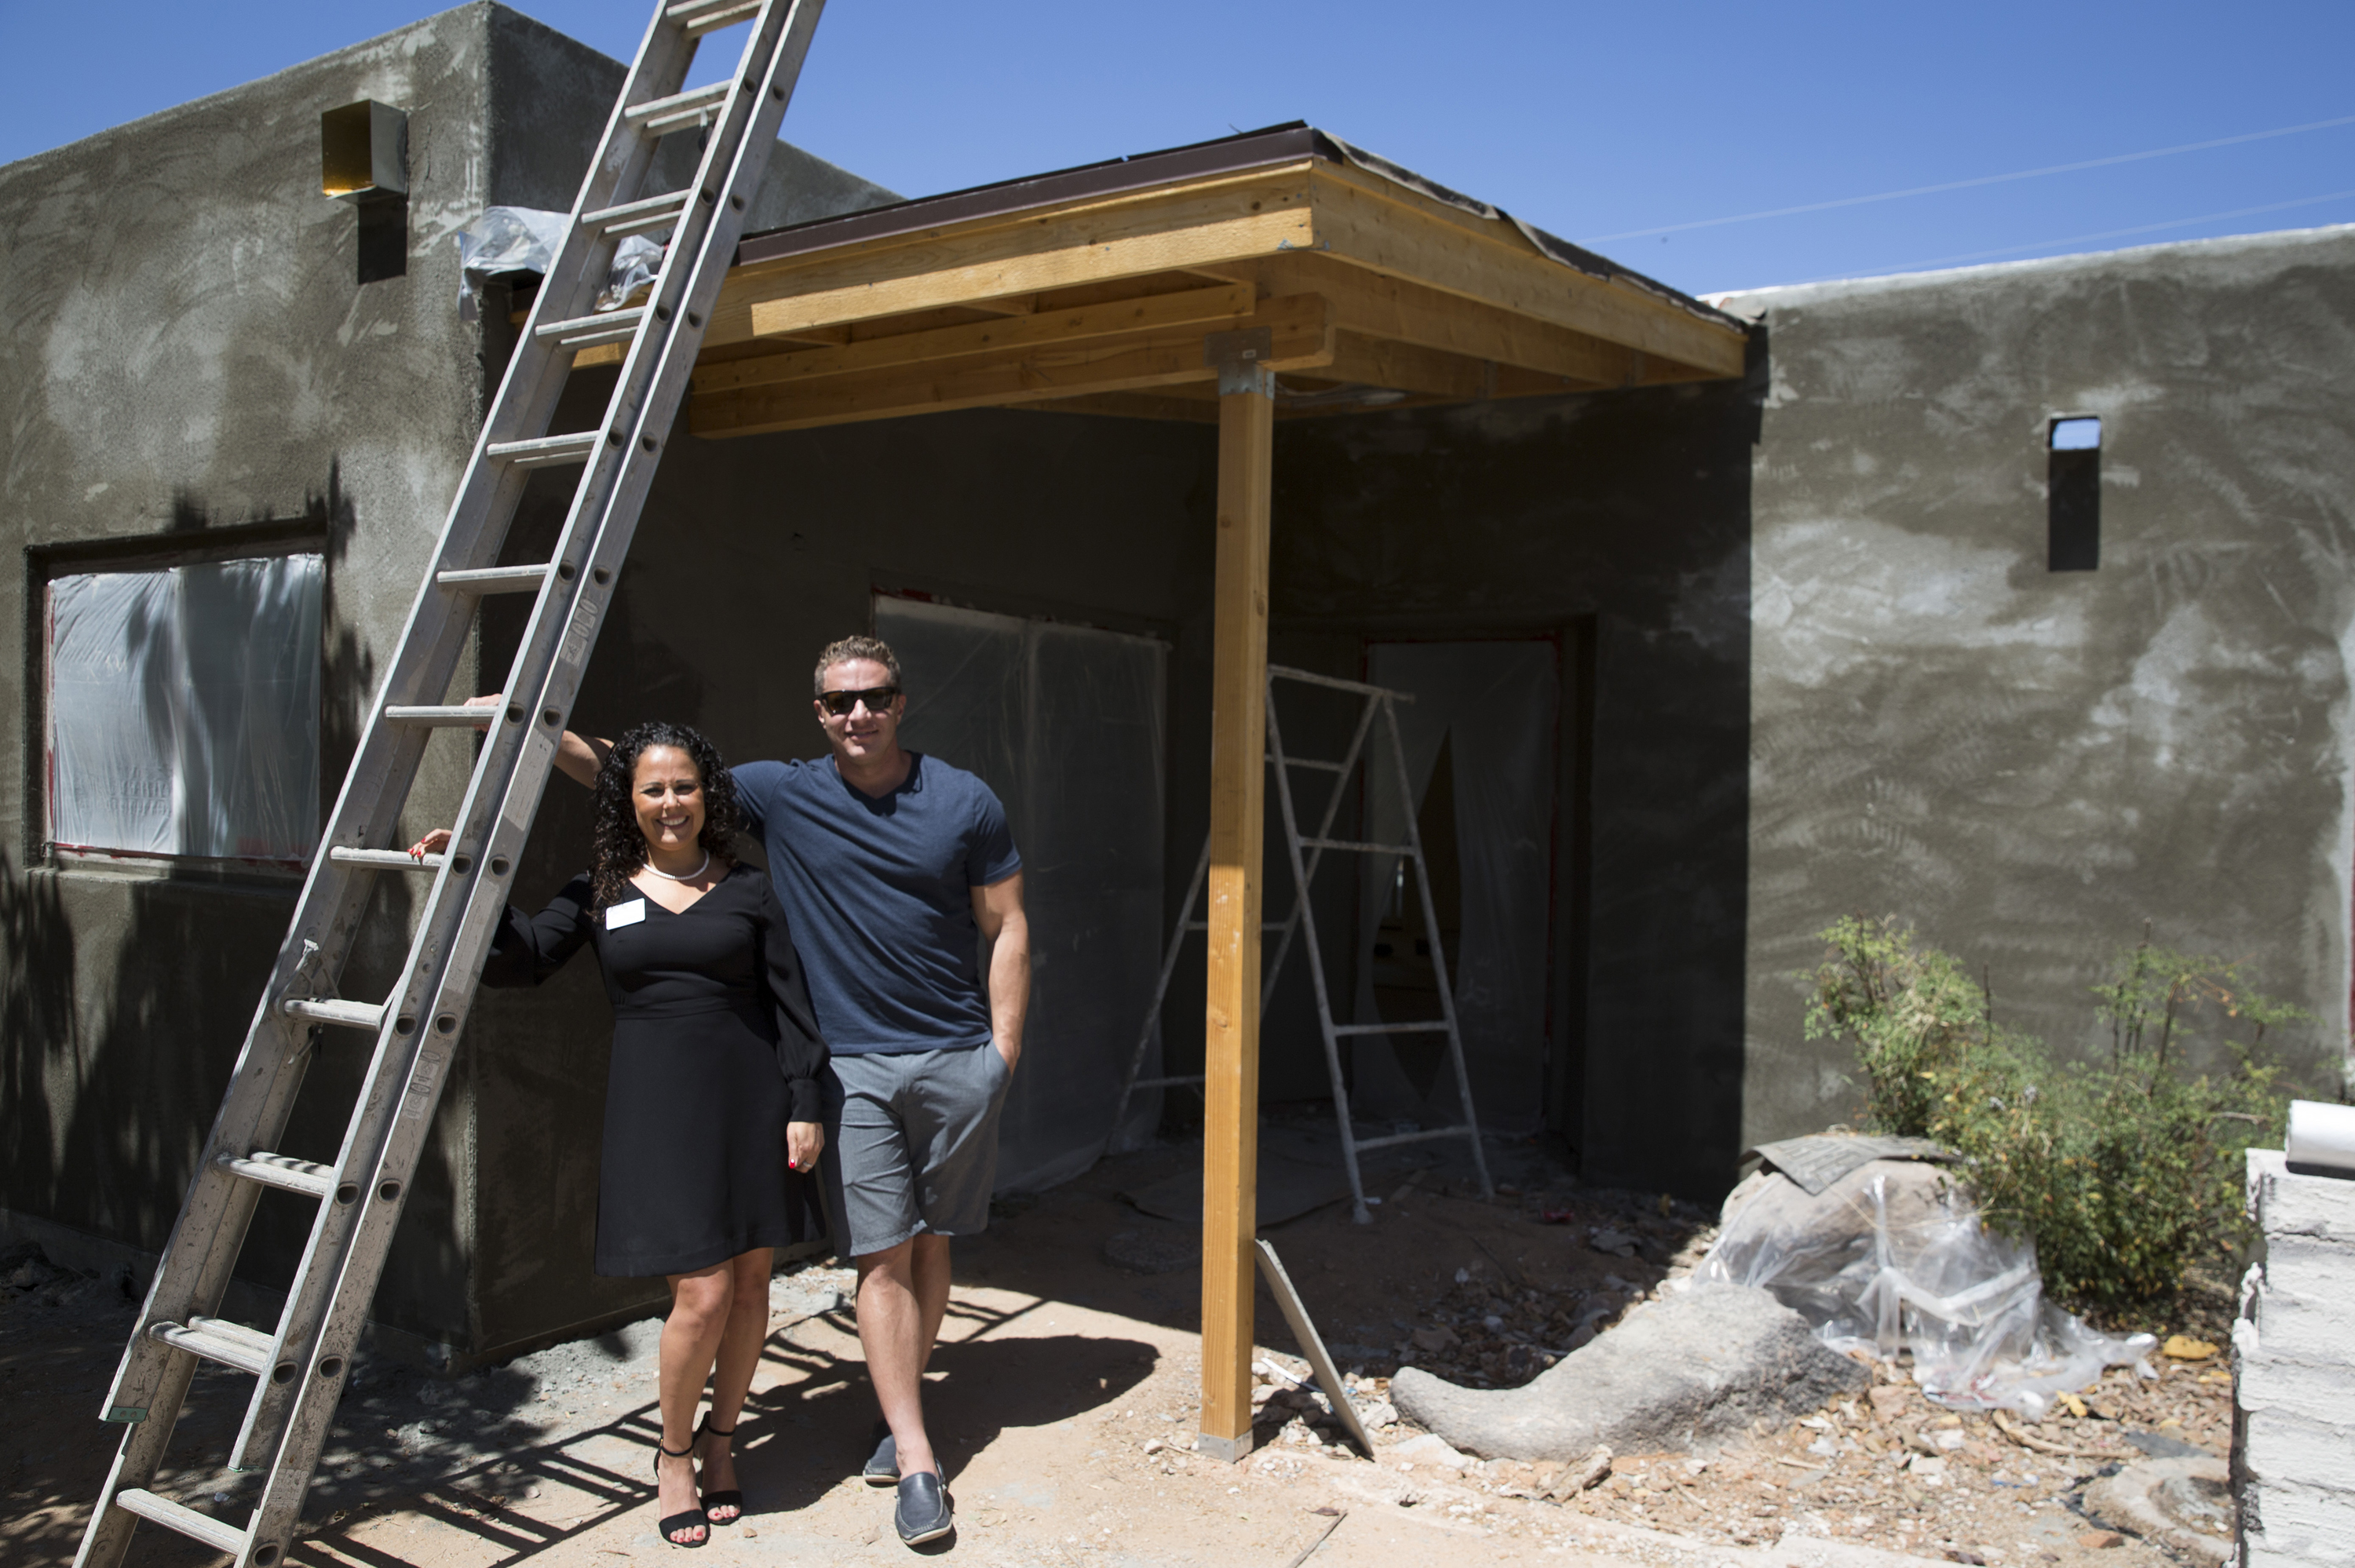 A Decade After The Bubble Burst, House Flipping Is On The Rise